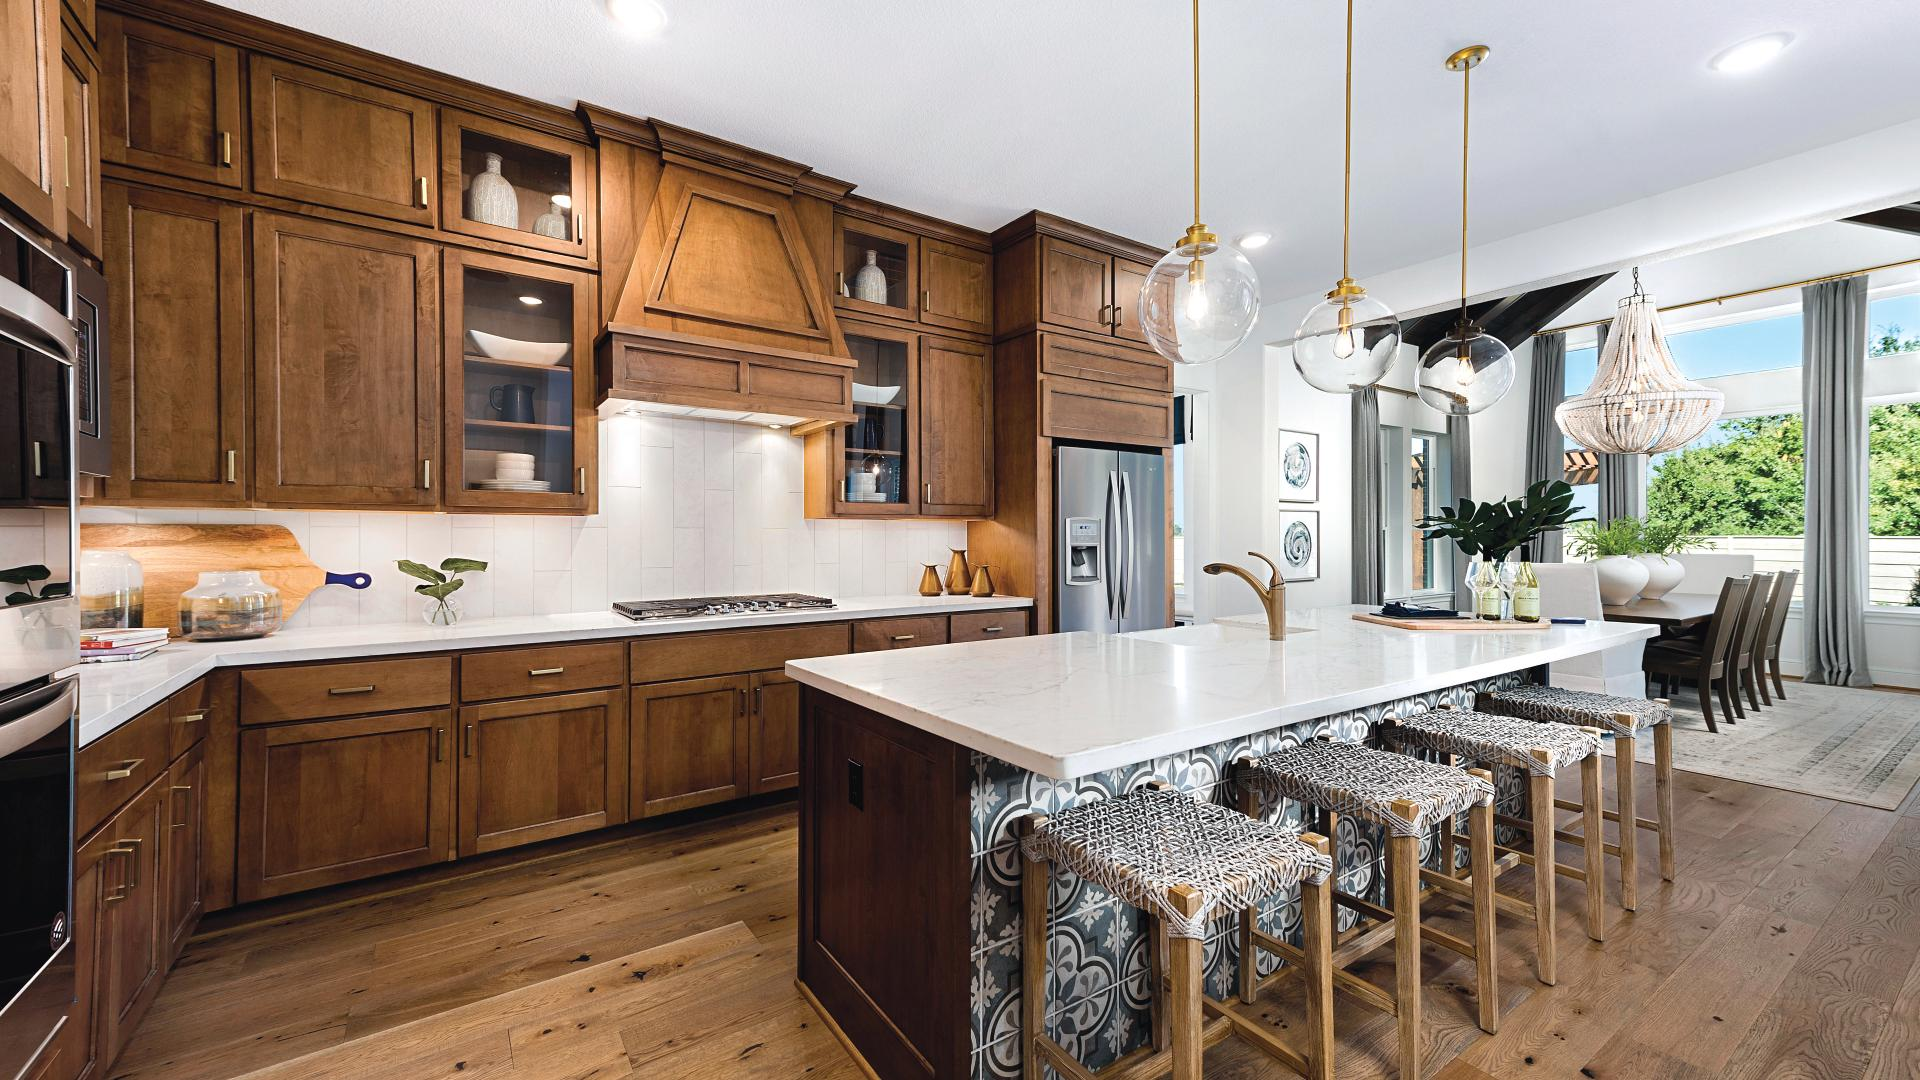 Gourmet kitchen with ample counter space